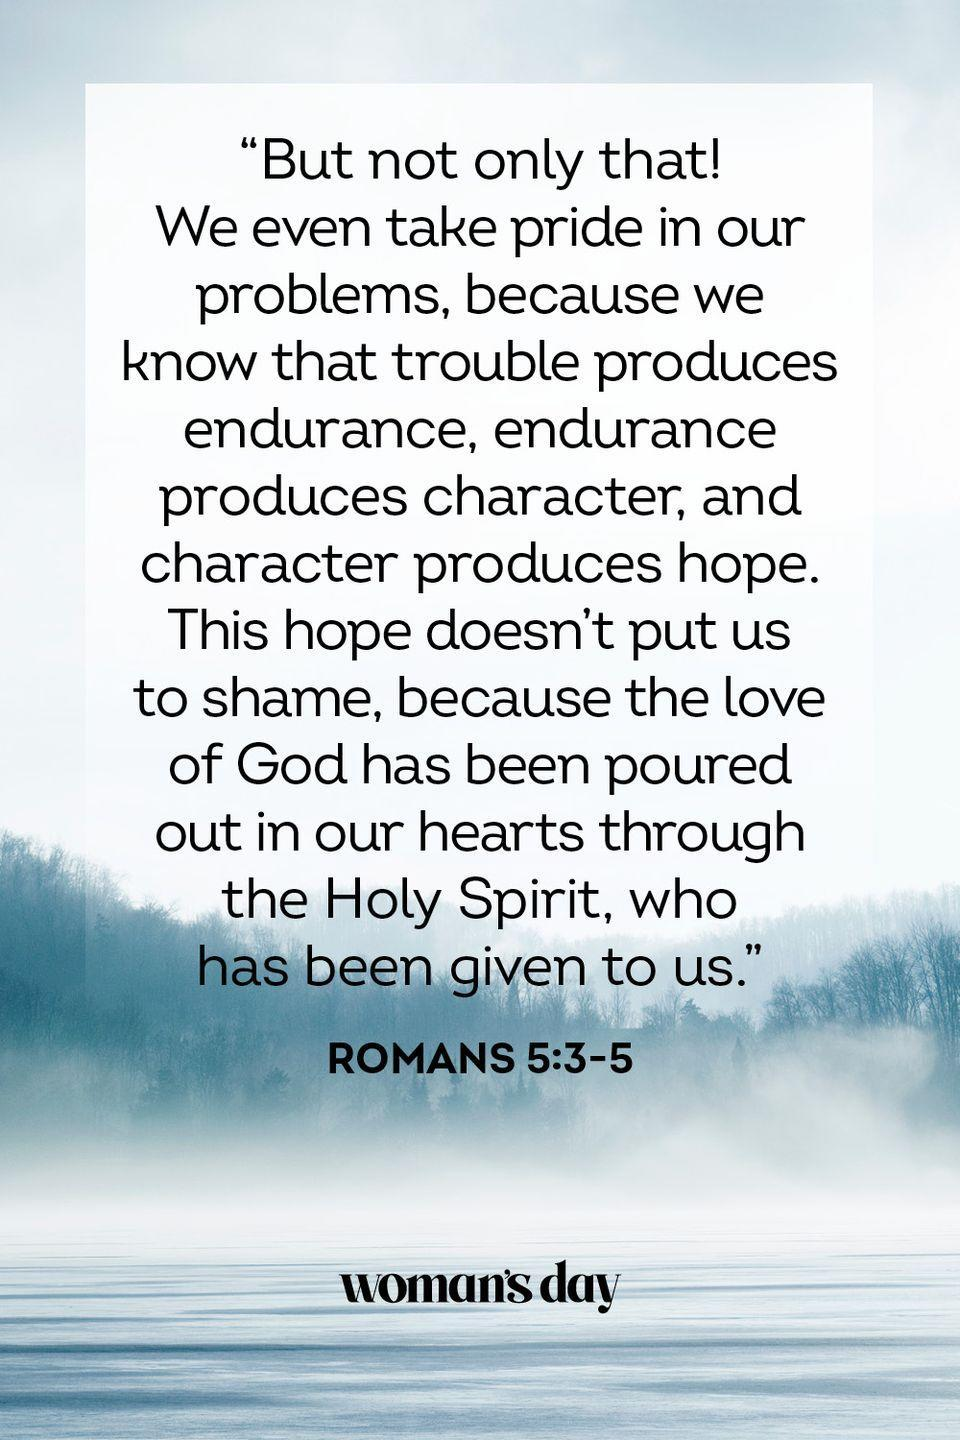 """<p>""""But not only that! We even take pride in our problems, because we know that trouble produces endurance, endurance produces character, and character produces hope. This hope doesn't put us to shame, because the love of God has been poured out in our hearts through the Holy Spirit, who has been given to us."""" — Romans 5:3-5</p><p><strong>THE GOOD NEWS</strong>: When things aren't going your way, you can take comfort in knowing that through struggle, you will grow into a stronger version of yourself.</p>"""